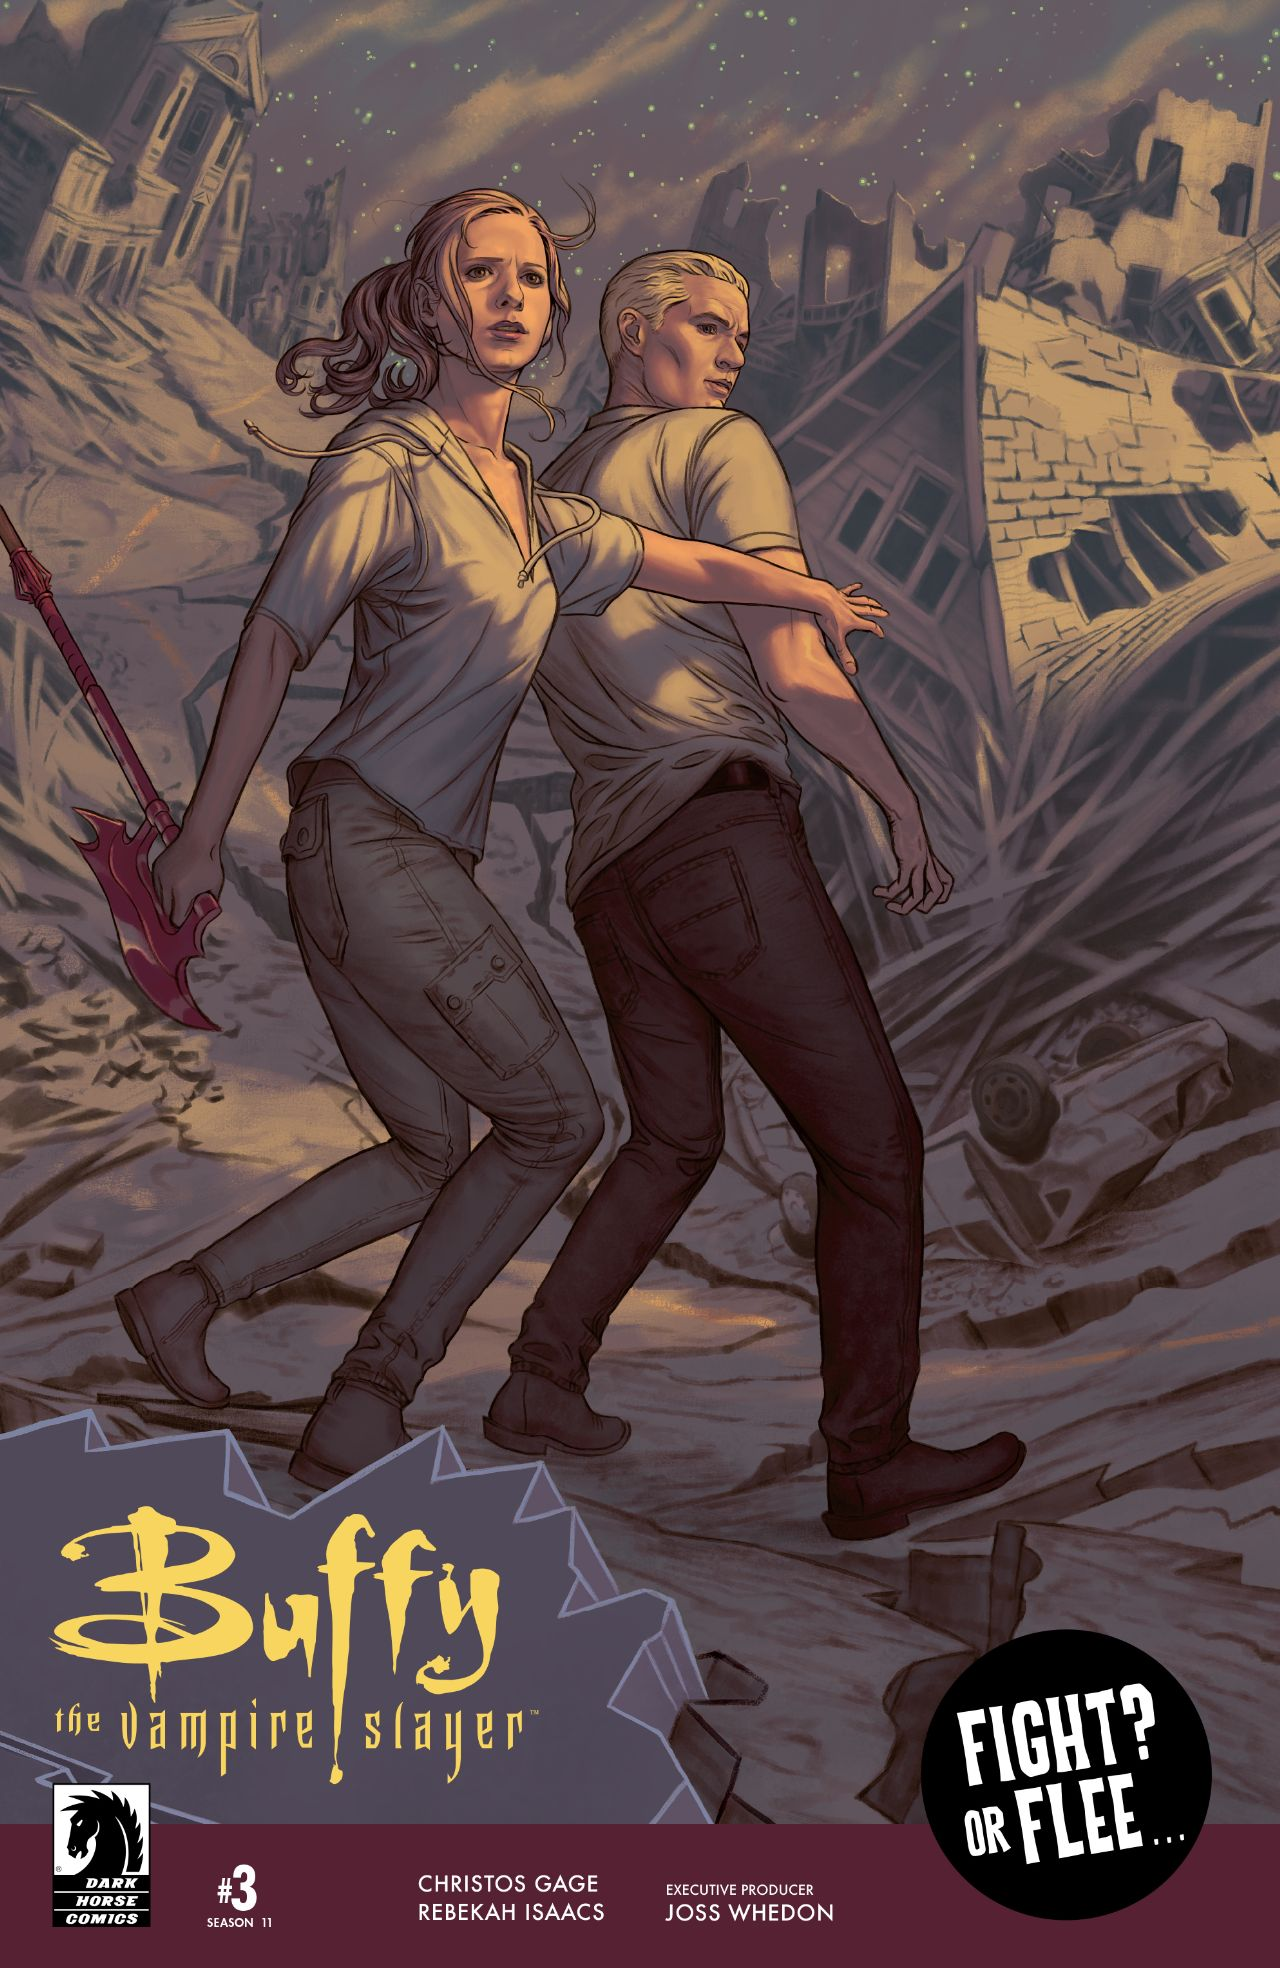 'Buffy the Vampire Slayer' (Season 11) #3 cover art by Steve Morris